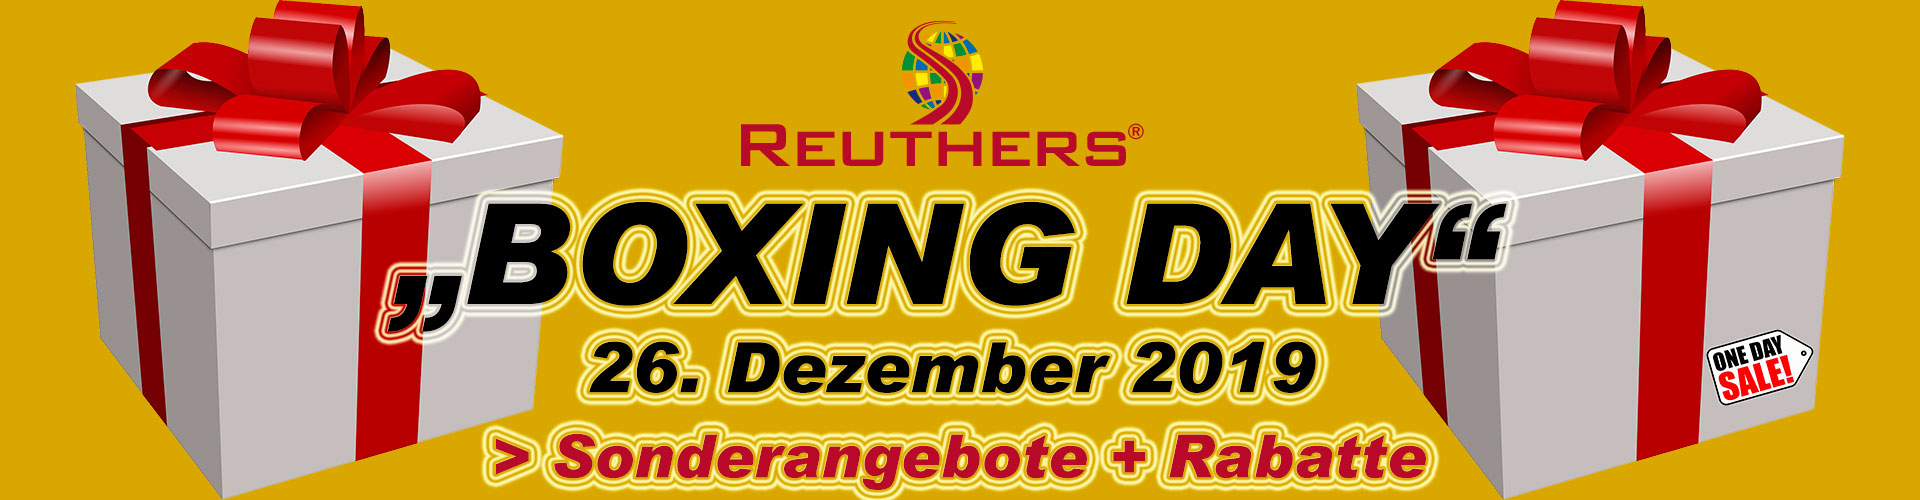 Reuthers Boxing Day